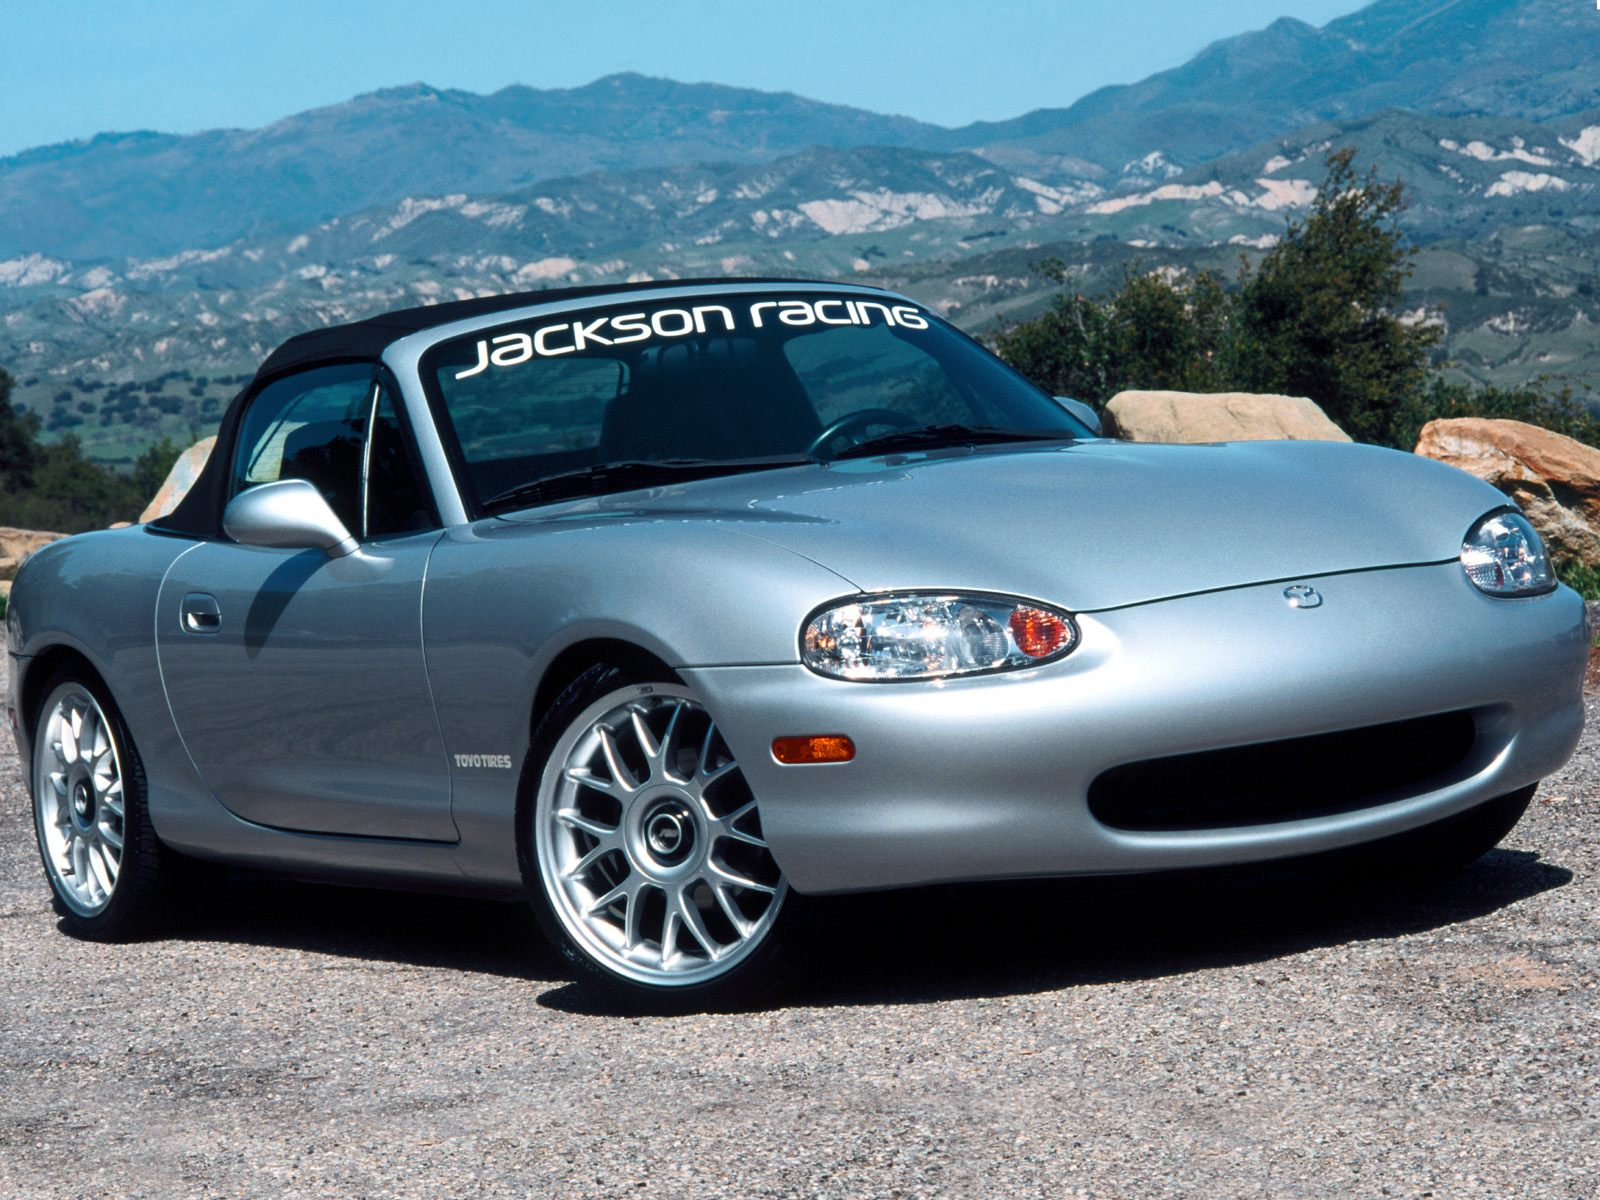 Mazda Miata. View Download Wallpaper. 1600x1200. Comments